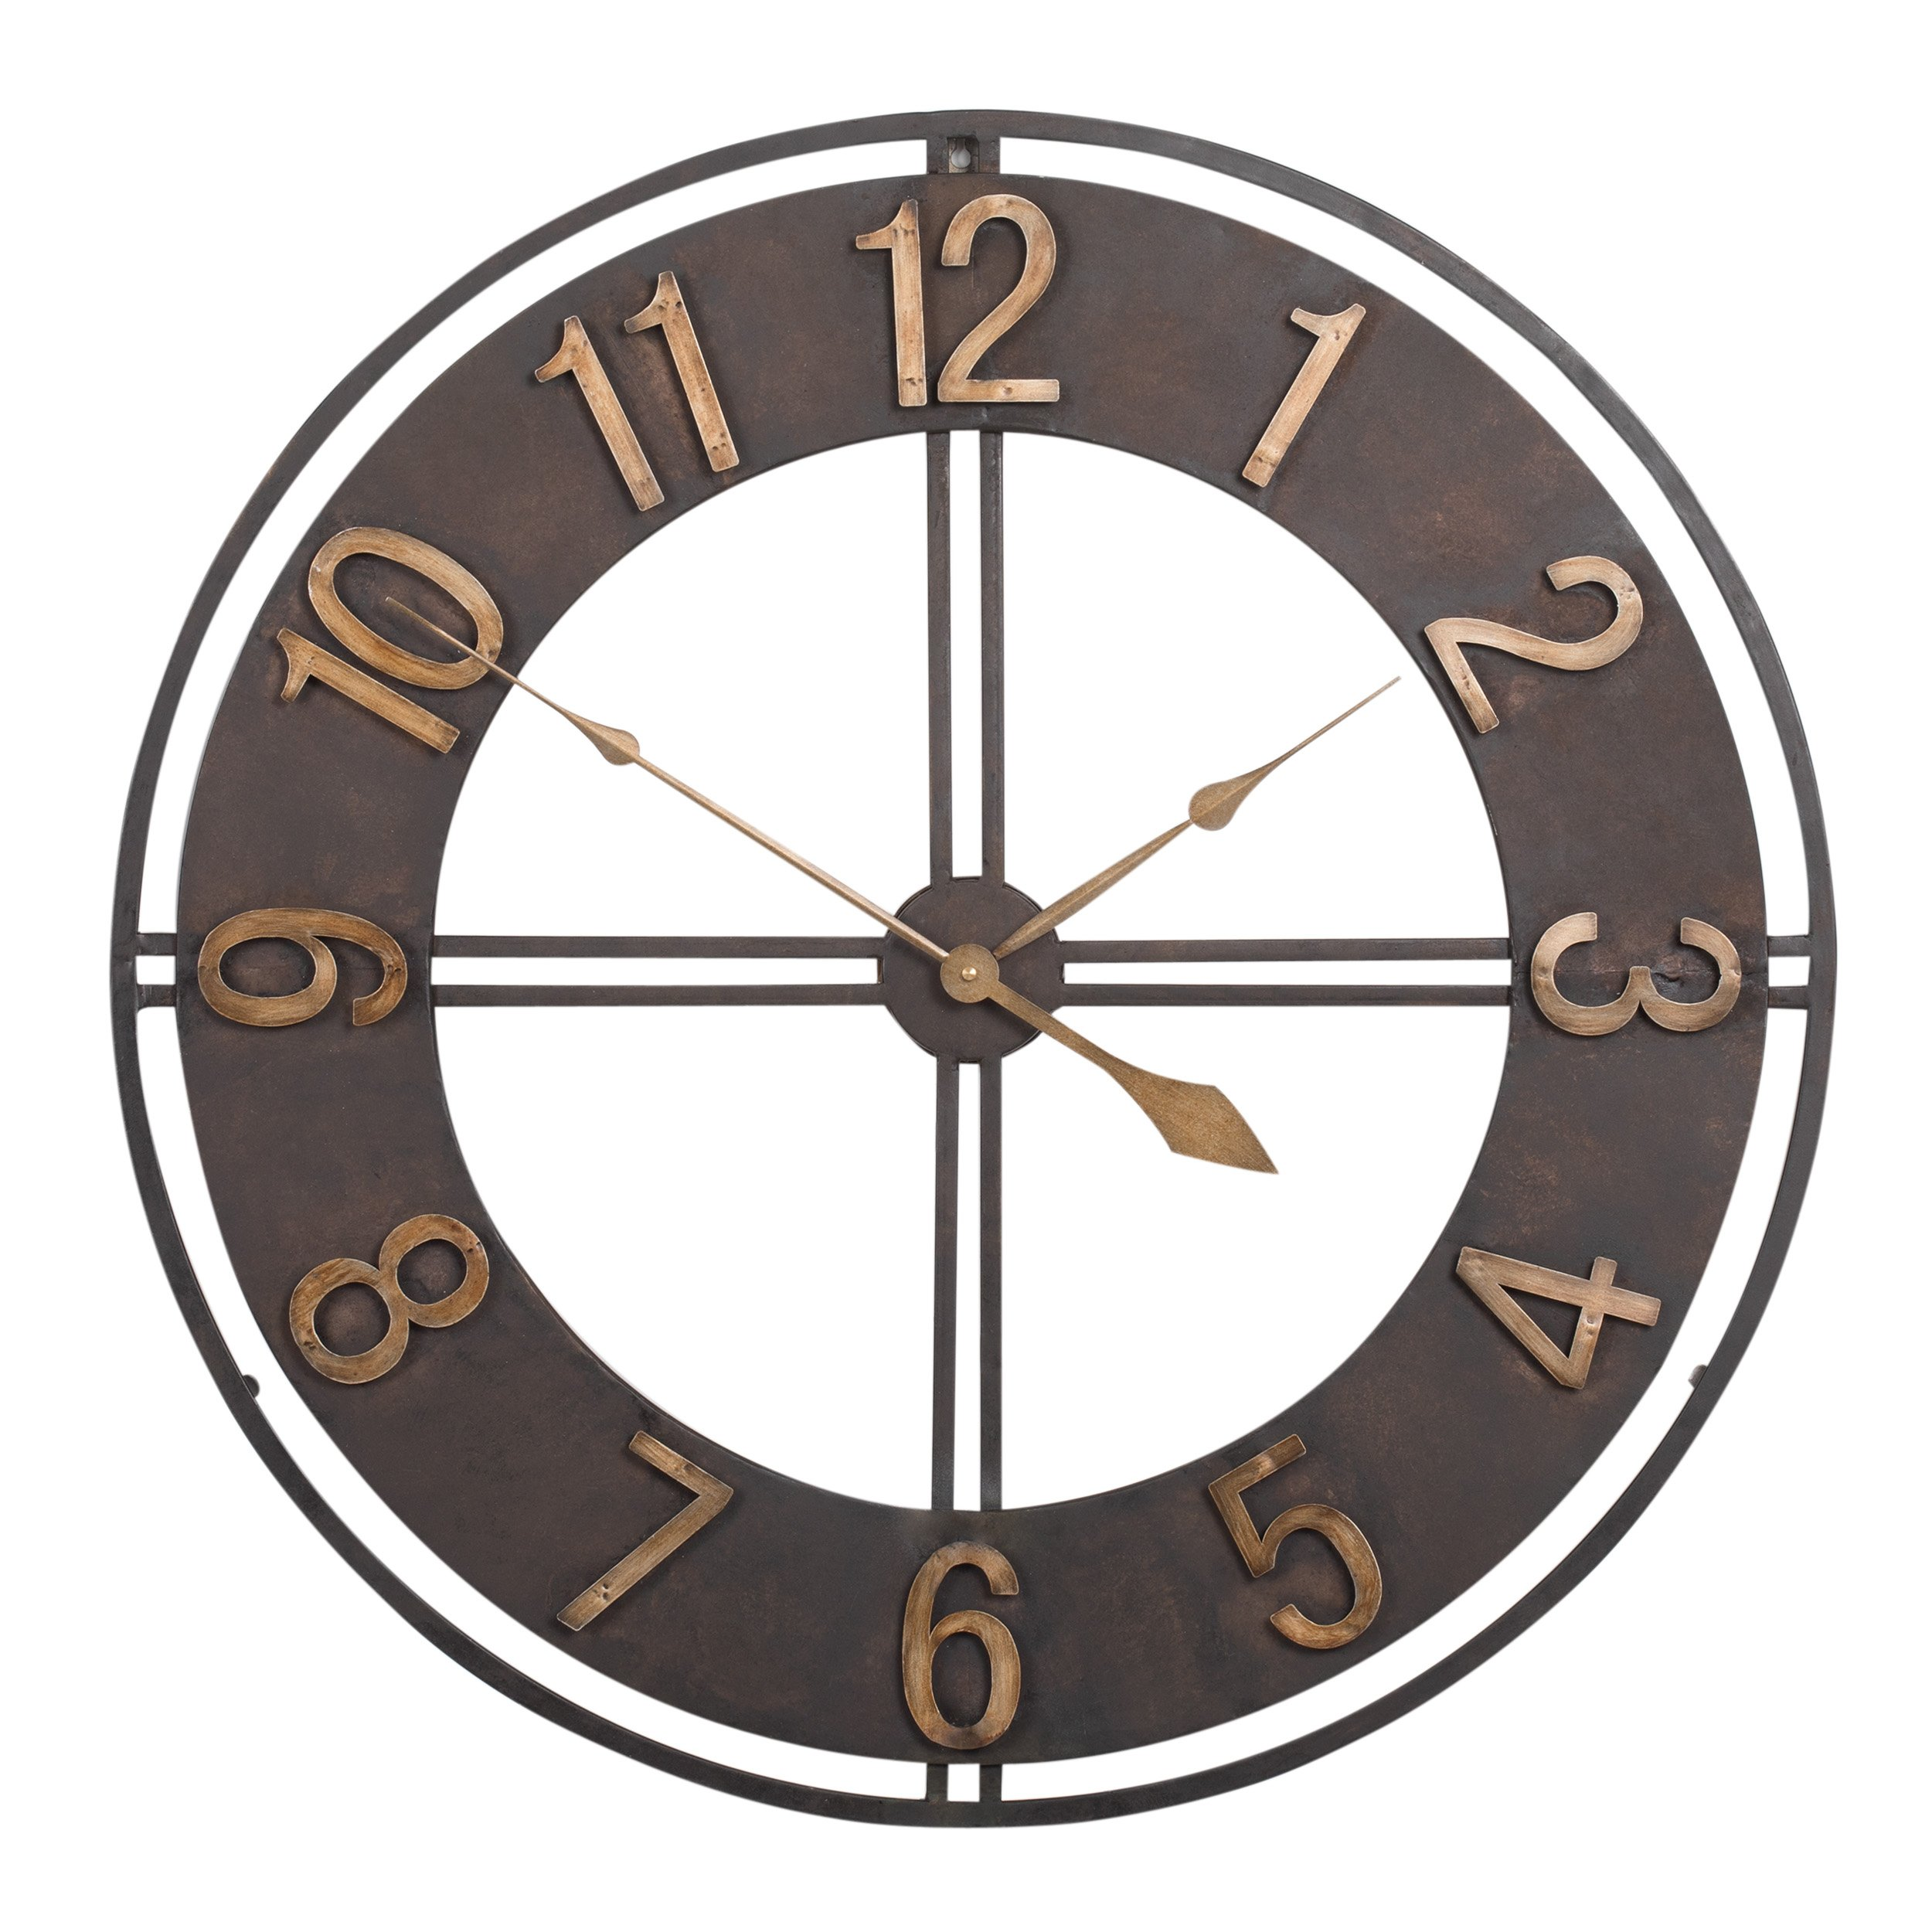 Studio Designs Home Industrial Loft 30 Inches Metal Wall Clock, Dark Bronze/Bronze